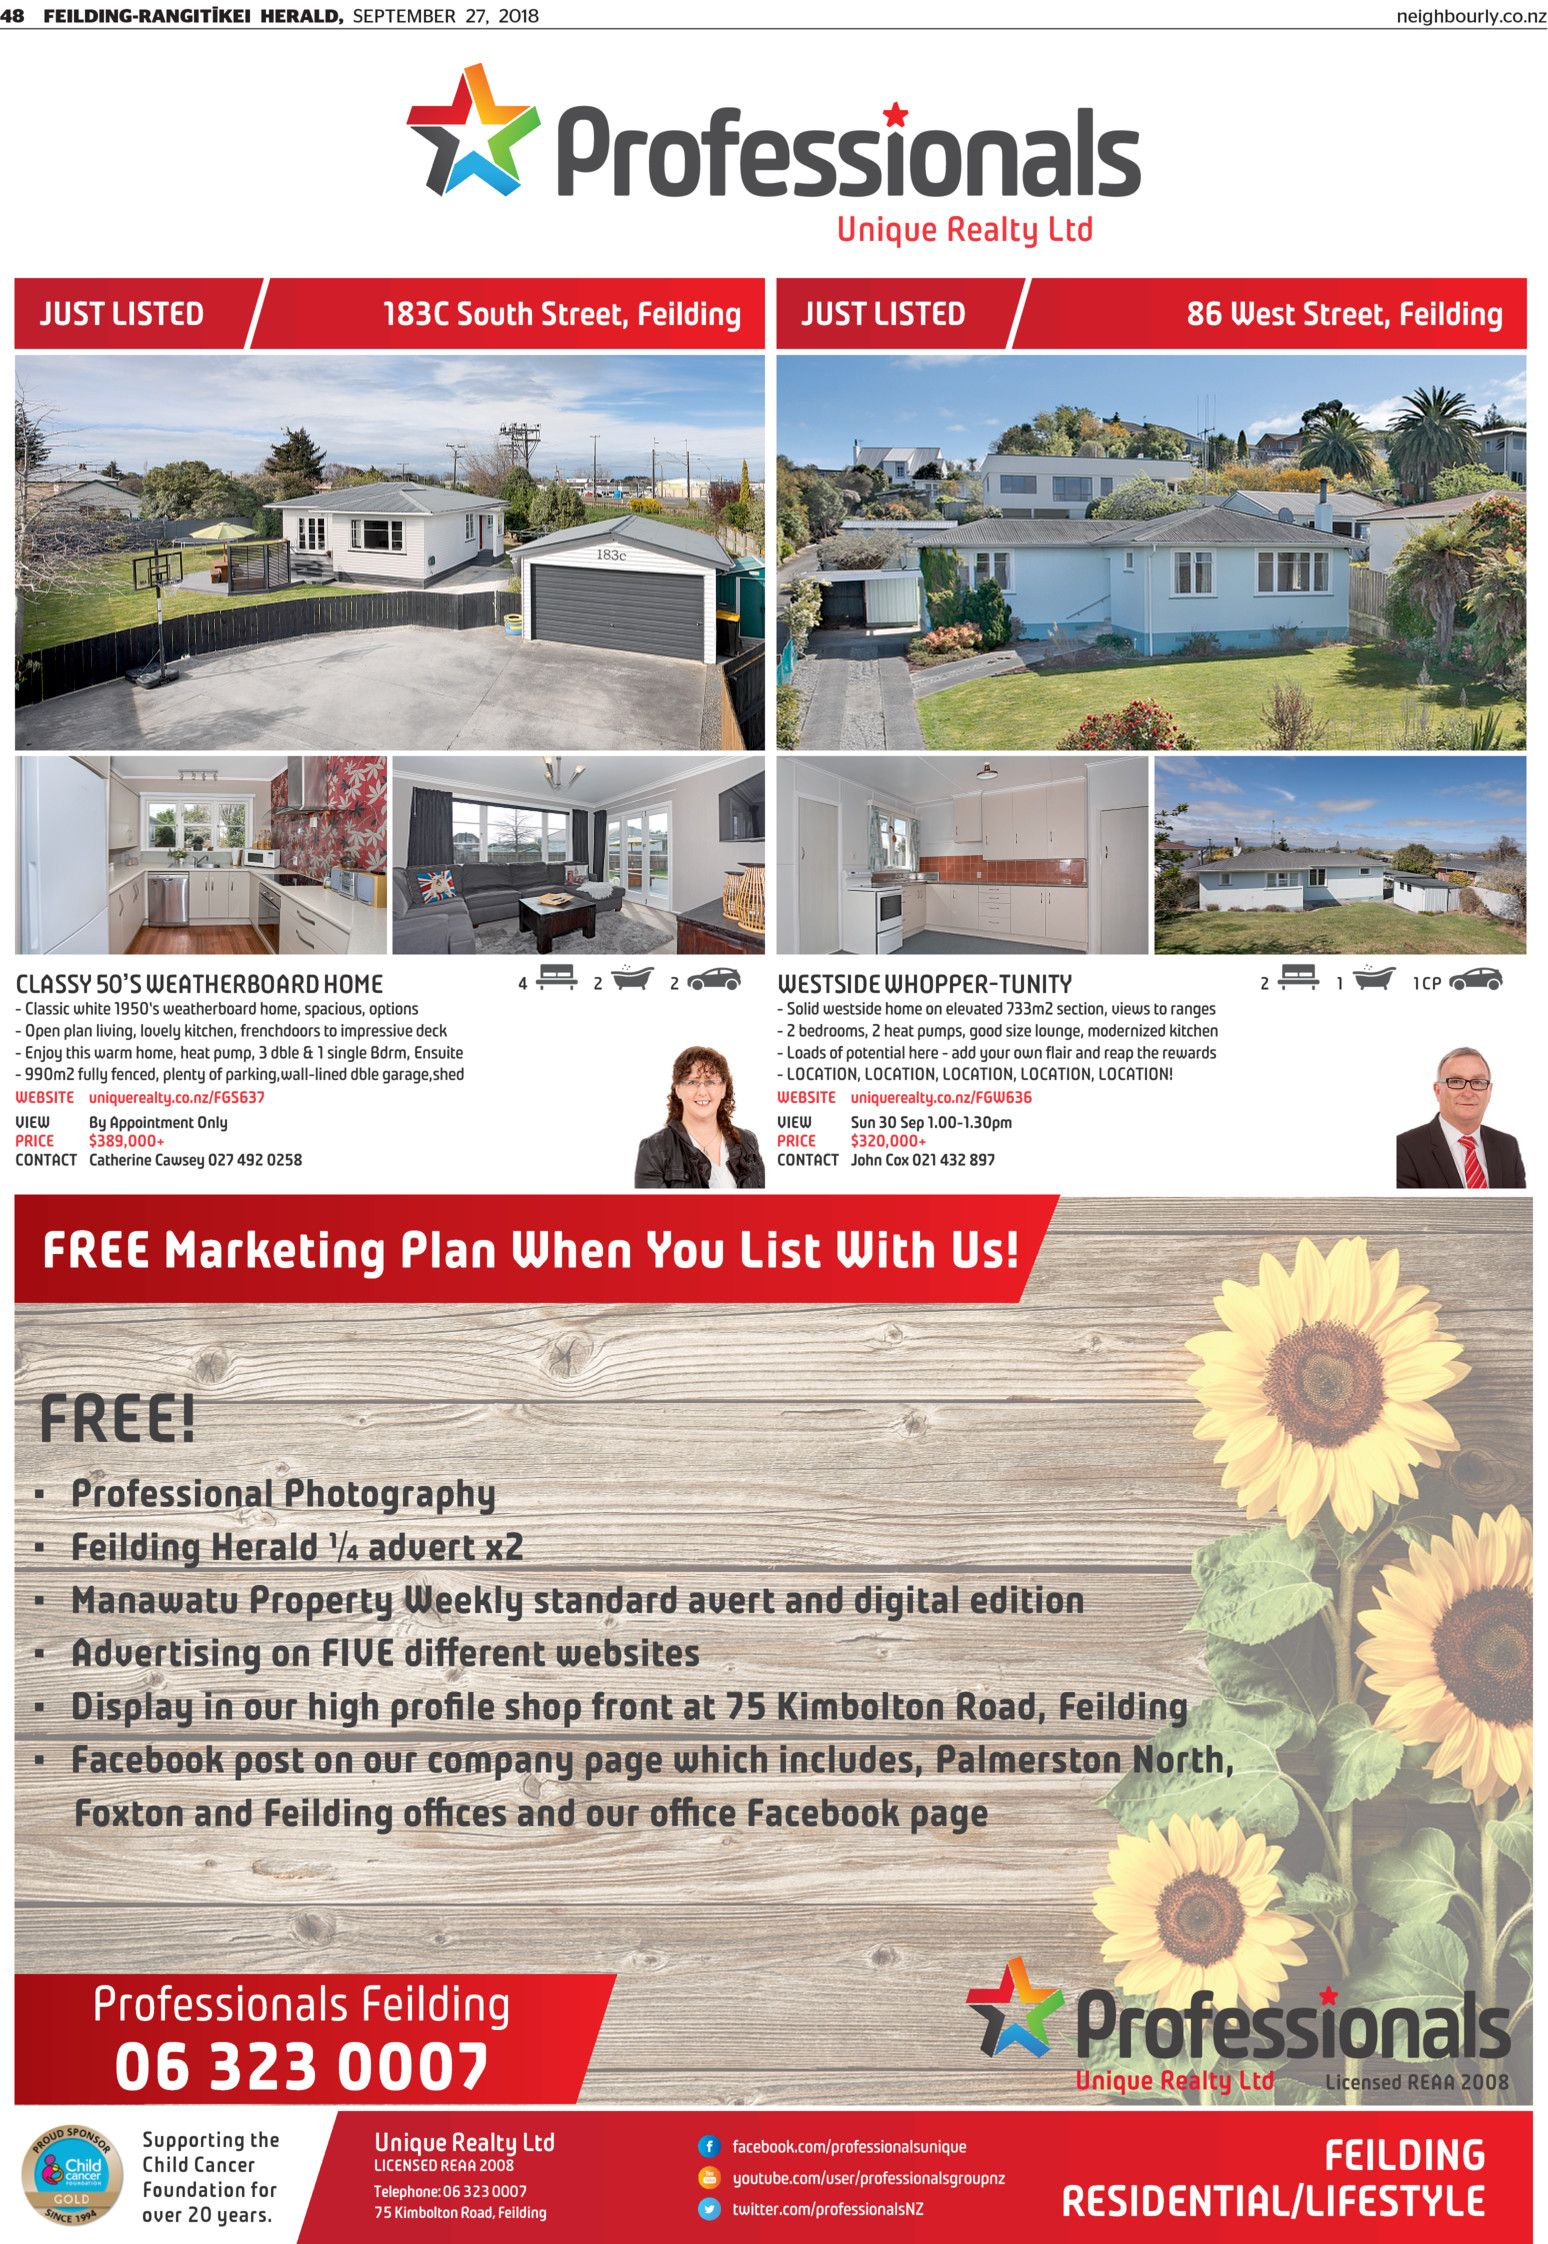 Feilding Rangitkei Herald Read Online On Neighbourly Easy Quick Shed Electrical Wiring Youtube